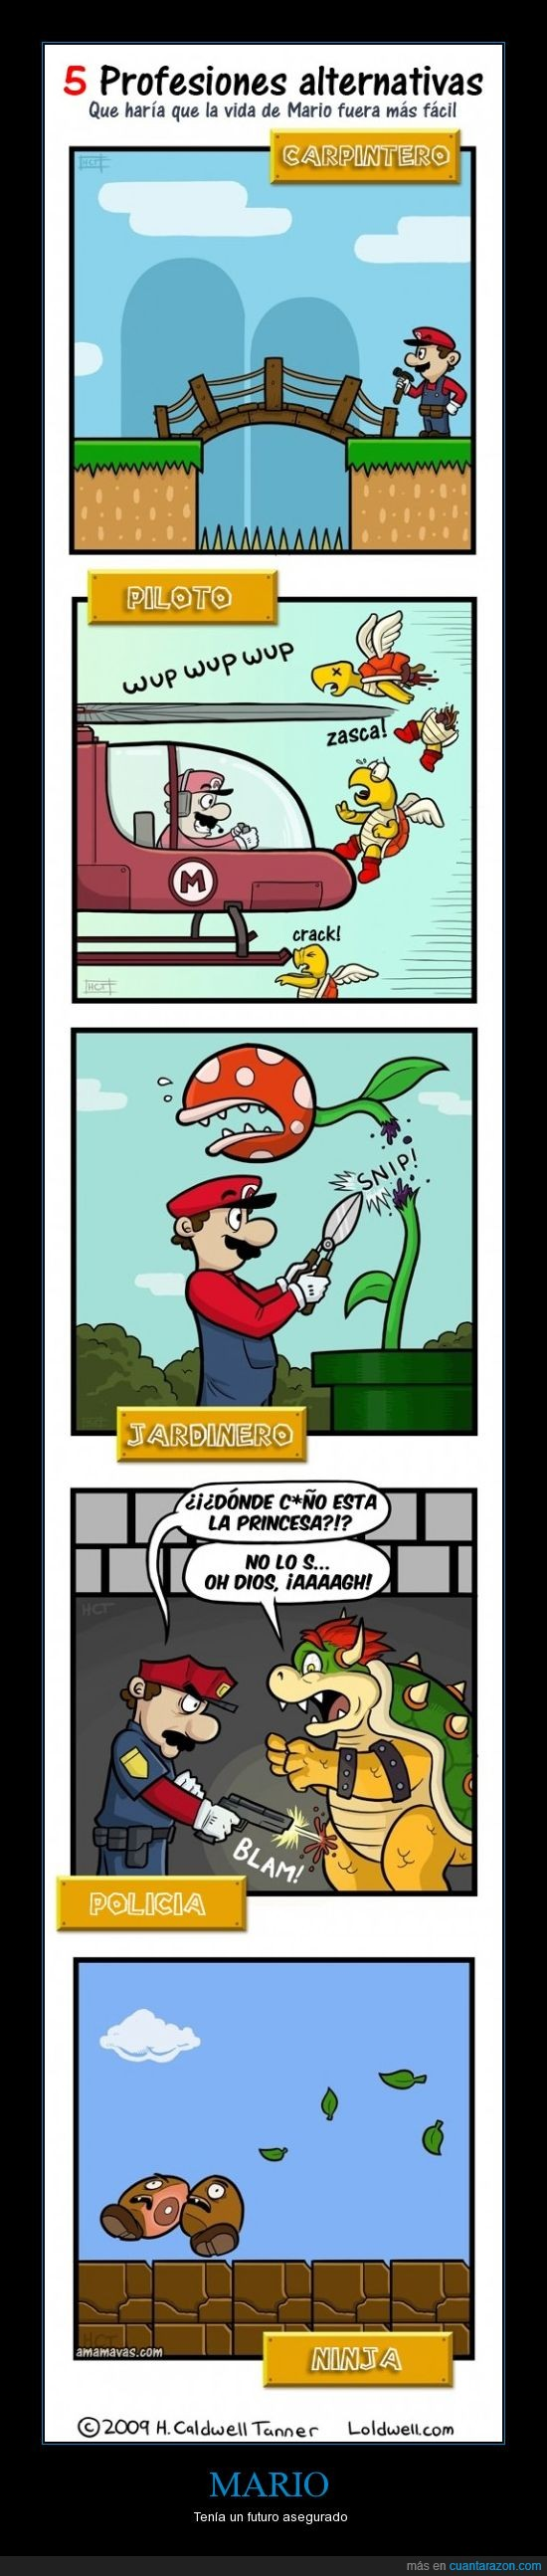 Alternativas,Mario Bros,Profesiones